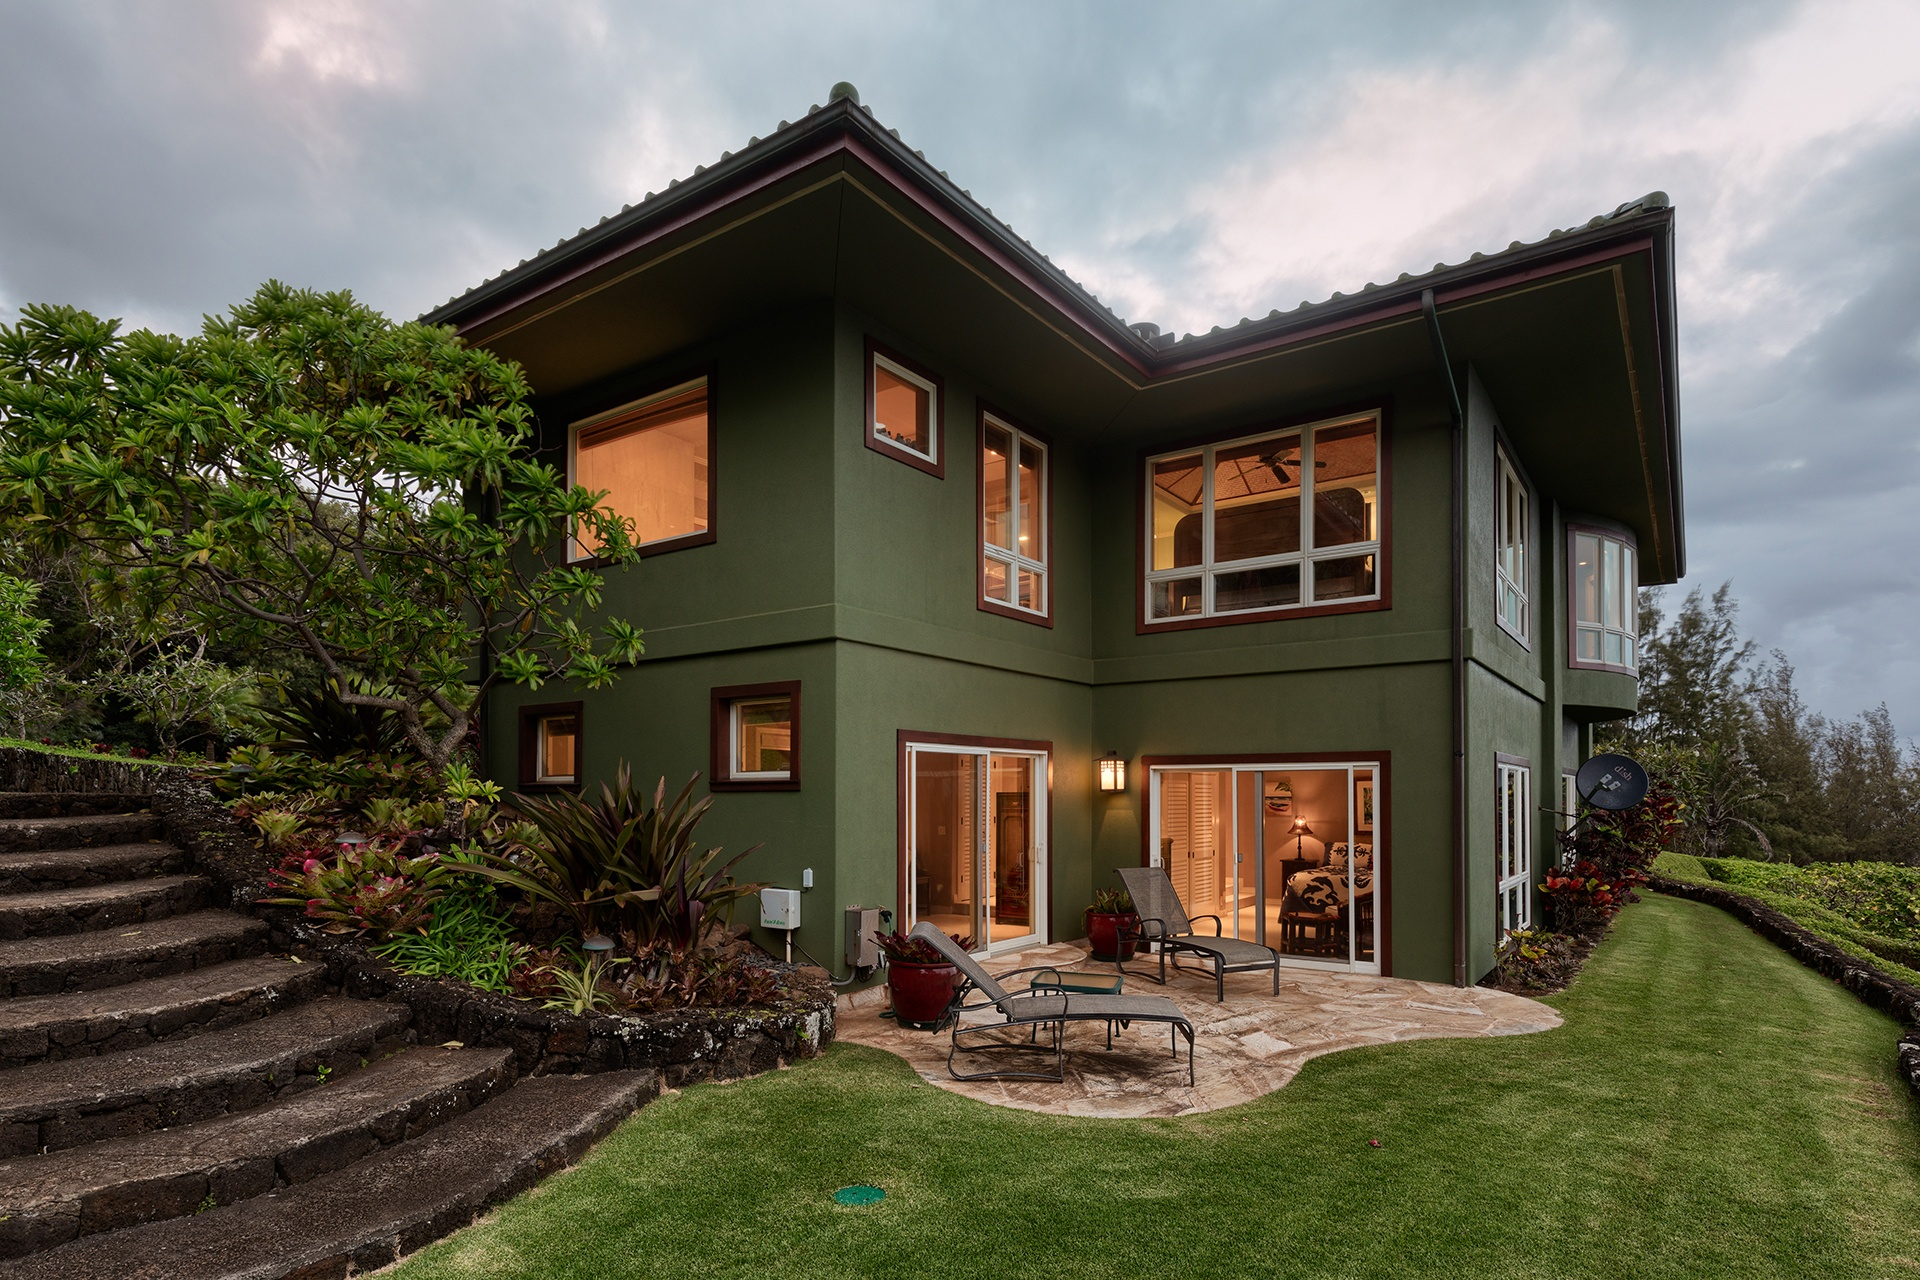 The charming main residence pays homage to Hawaii's colonial and Asian influence.